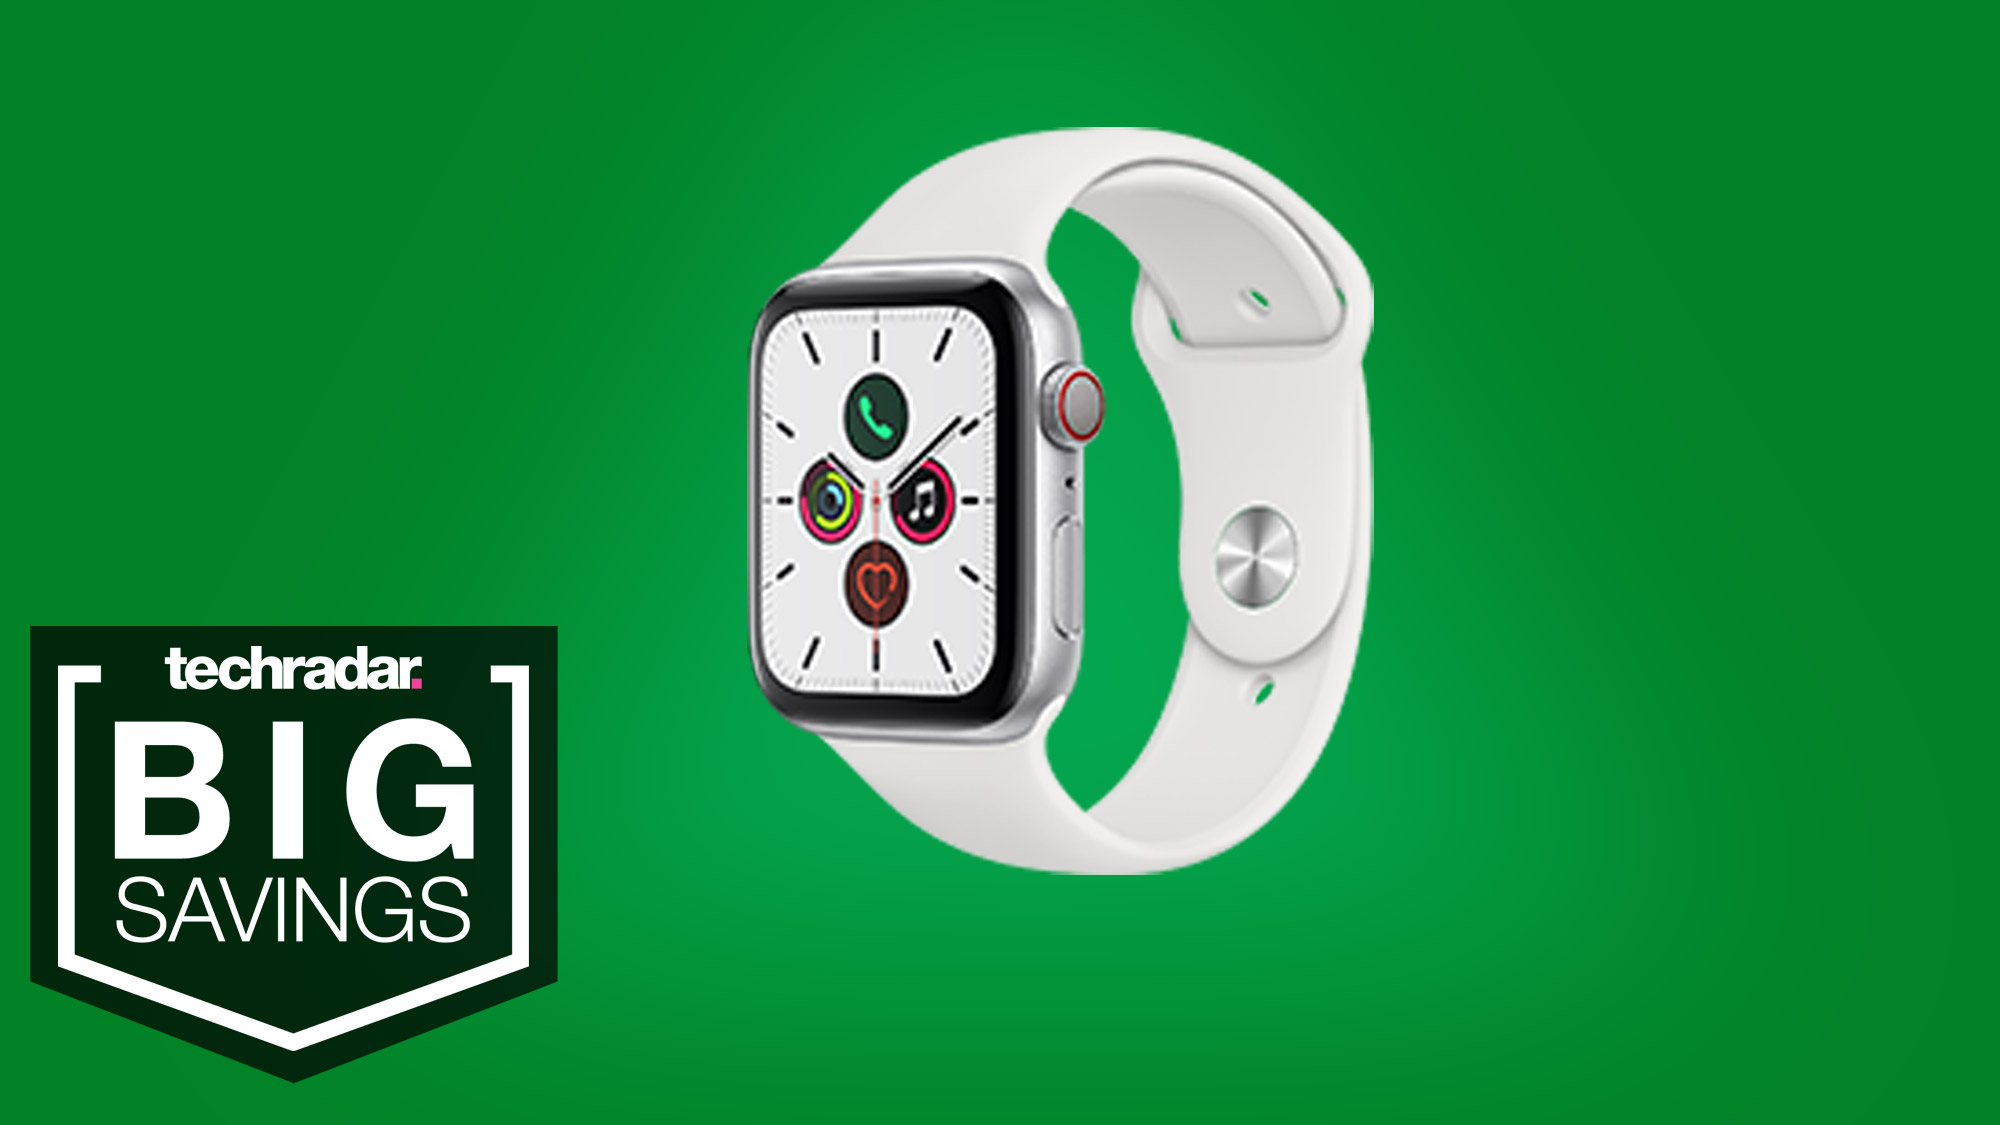 The Apple Watch 4 Gets A 300 Price Cut At Best Buy Ahead Of Black Friday Sales Techradar